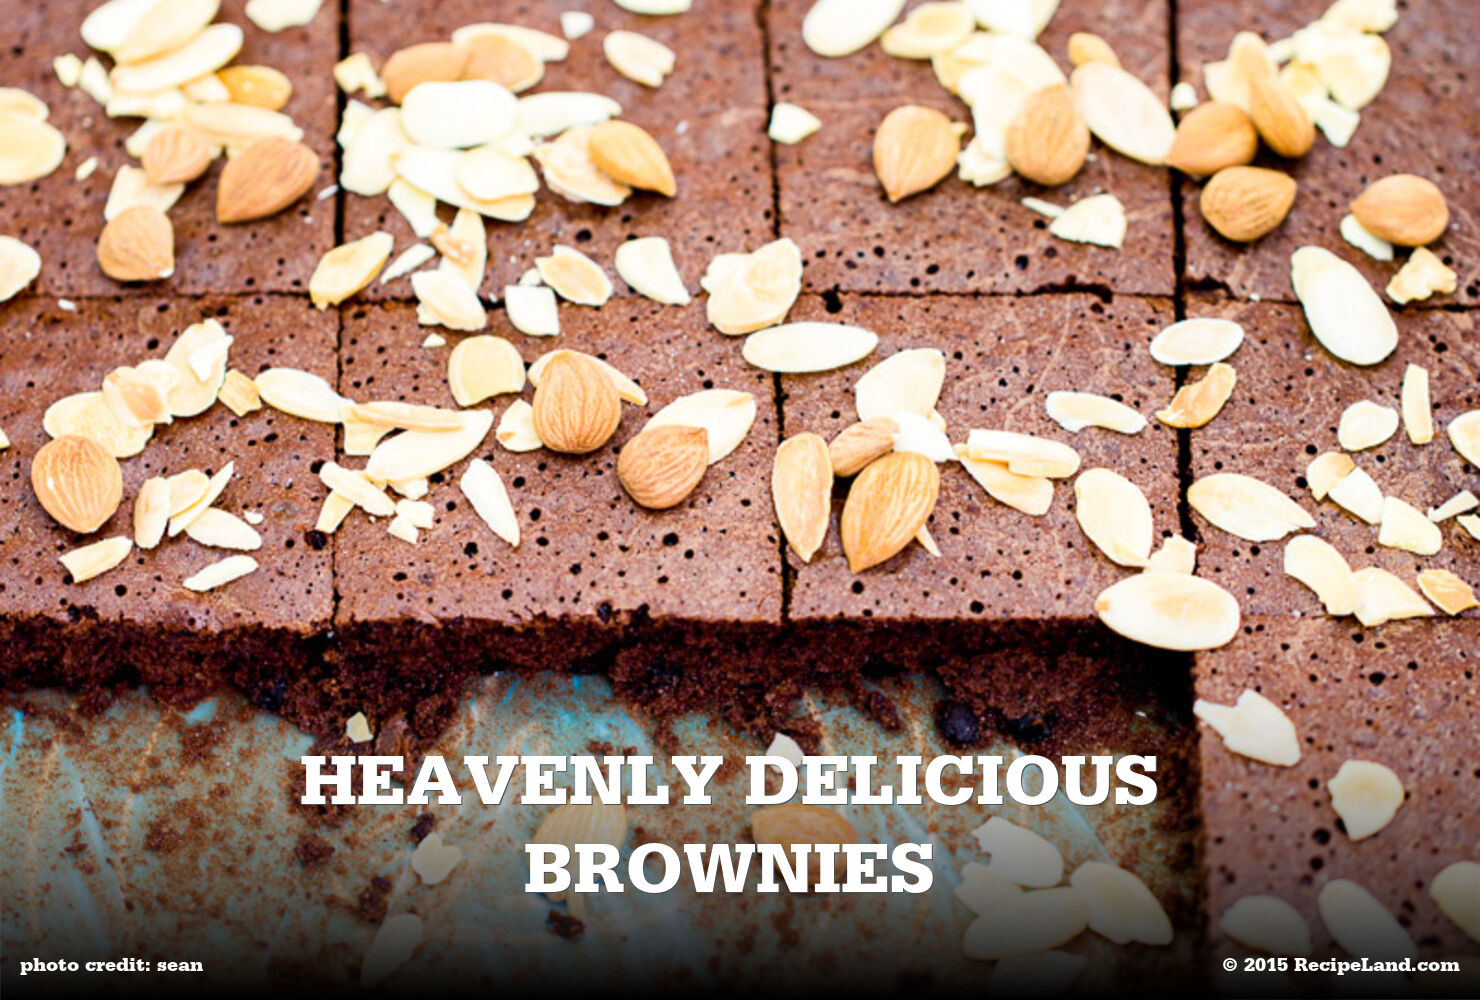 Heavenly Delicious Brownies